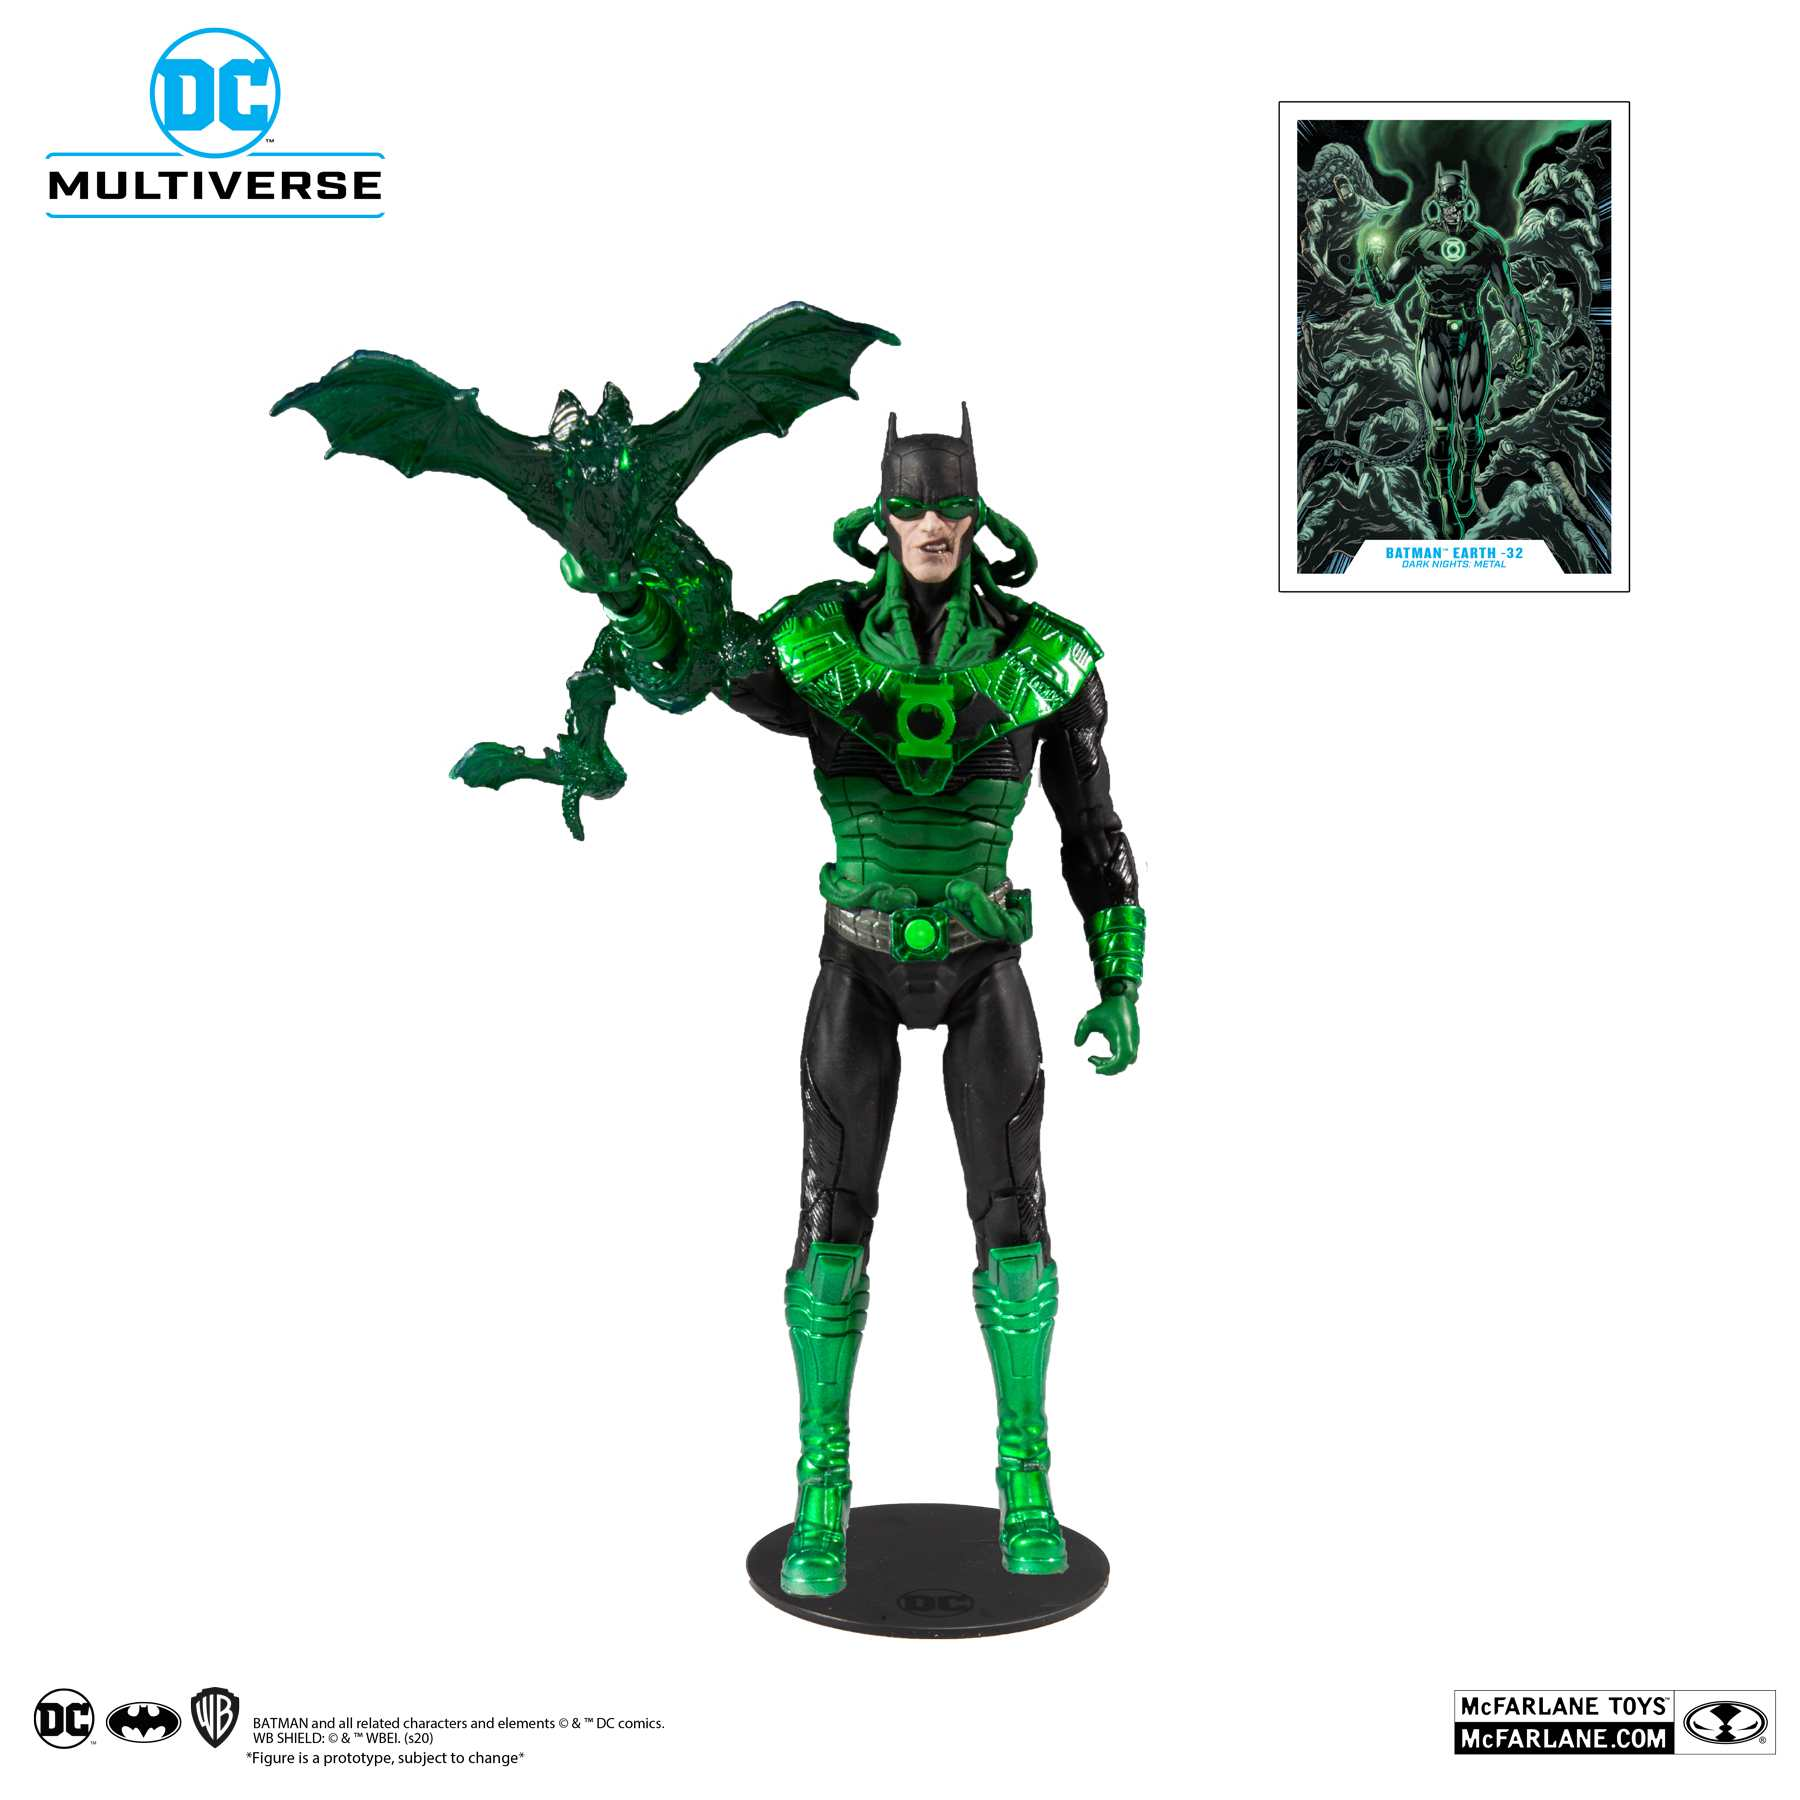 BATMAN EARTH-32 DAWNBREAKER - DC MULTIVERSE DARK NIGHTS METAL McFarlane Toys 7-Inch Action Figure